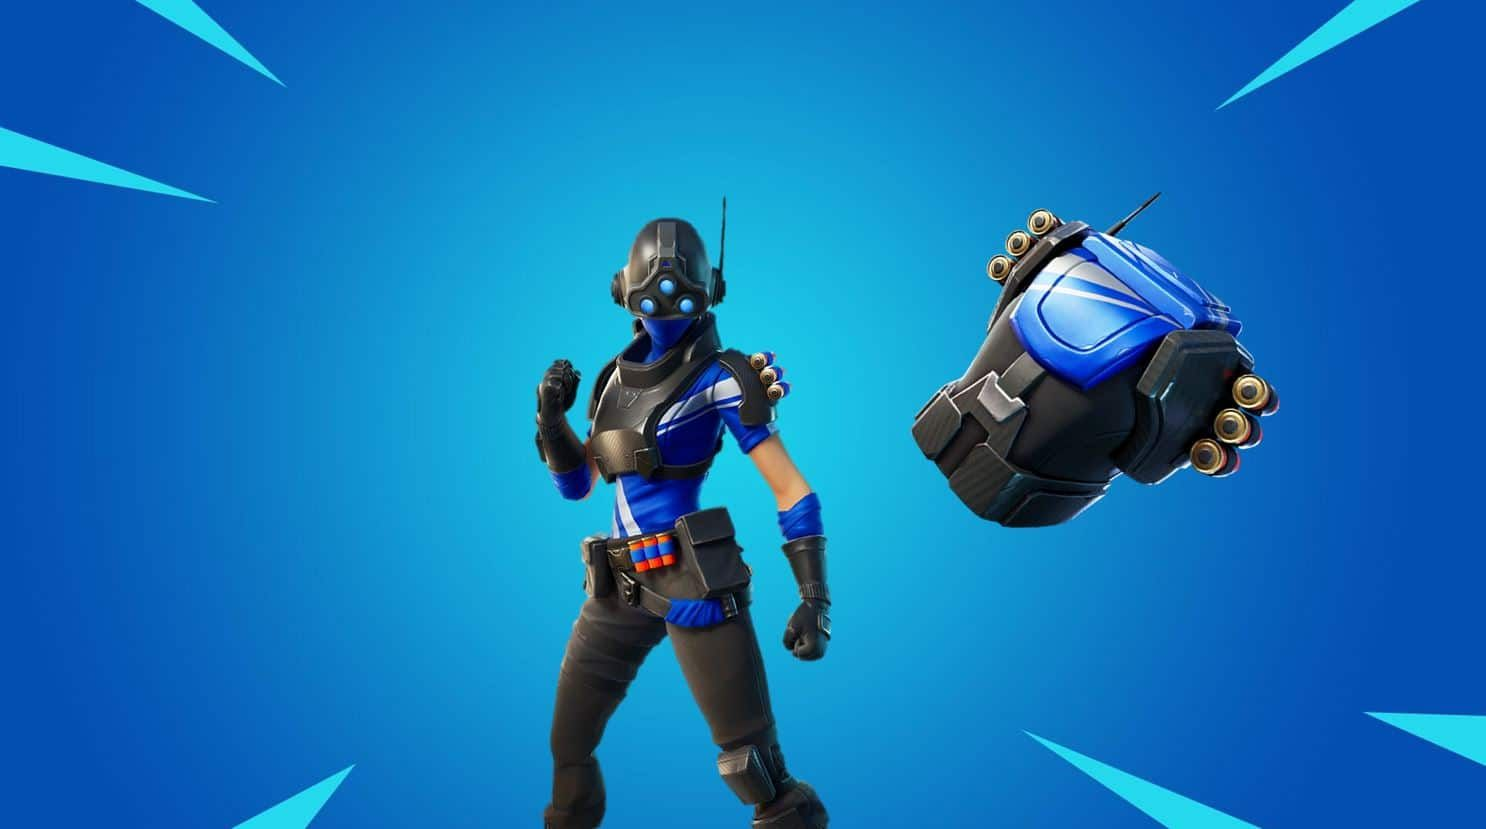 Fortnite Free Playstation Plus Celebration Pack Trilogy Skin Reliant Blue Back Bling Free Playstation Plus Blue Back Fortnite